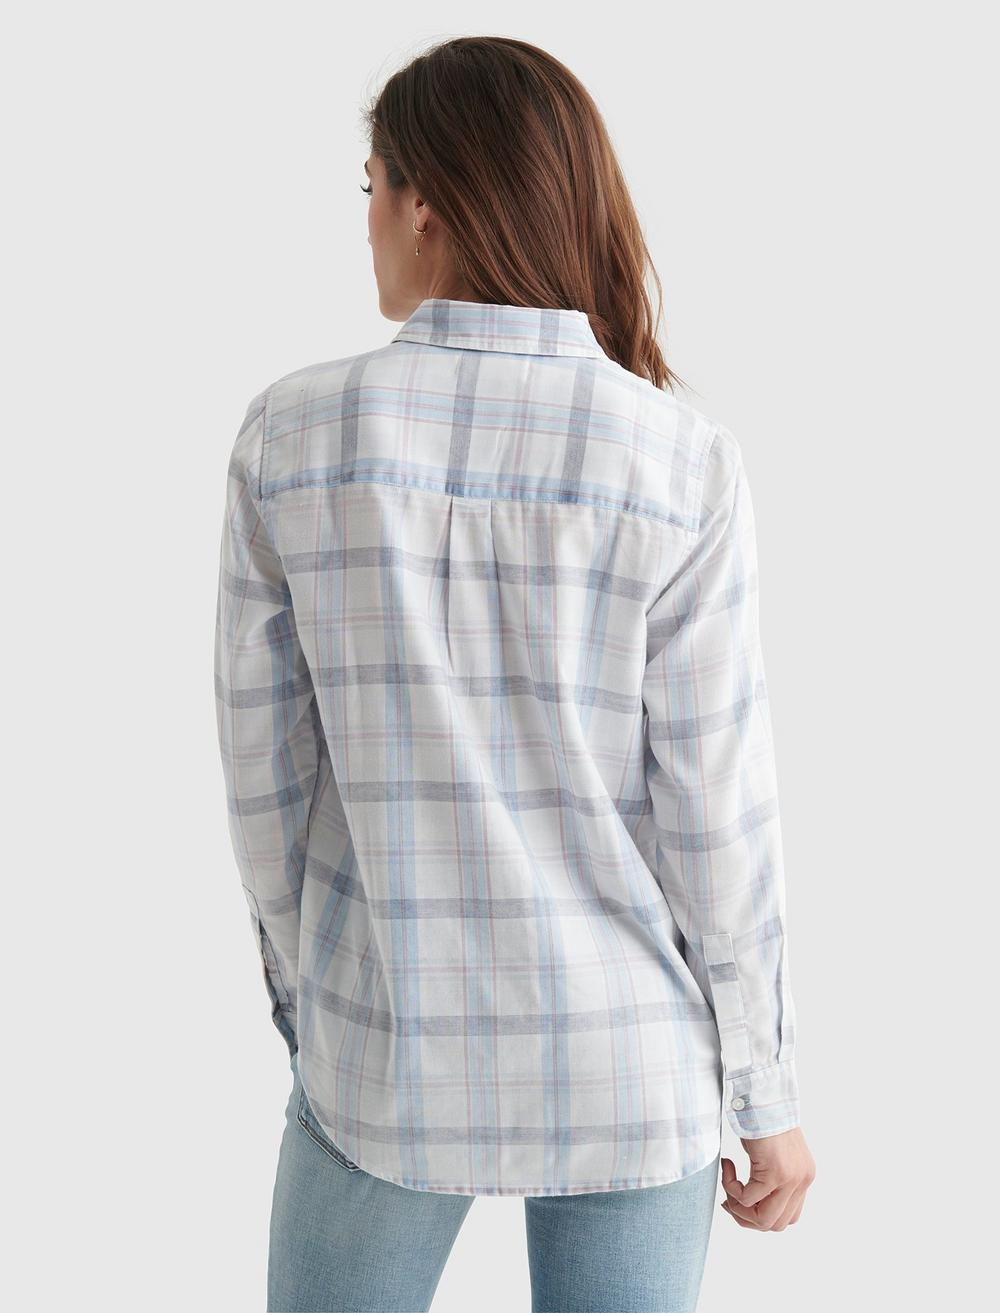 RELAXED-FIT PLAID WOVEN SHIRT, image 5